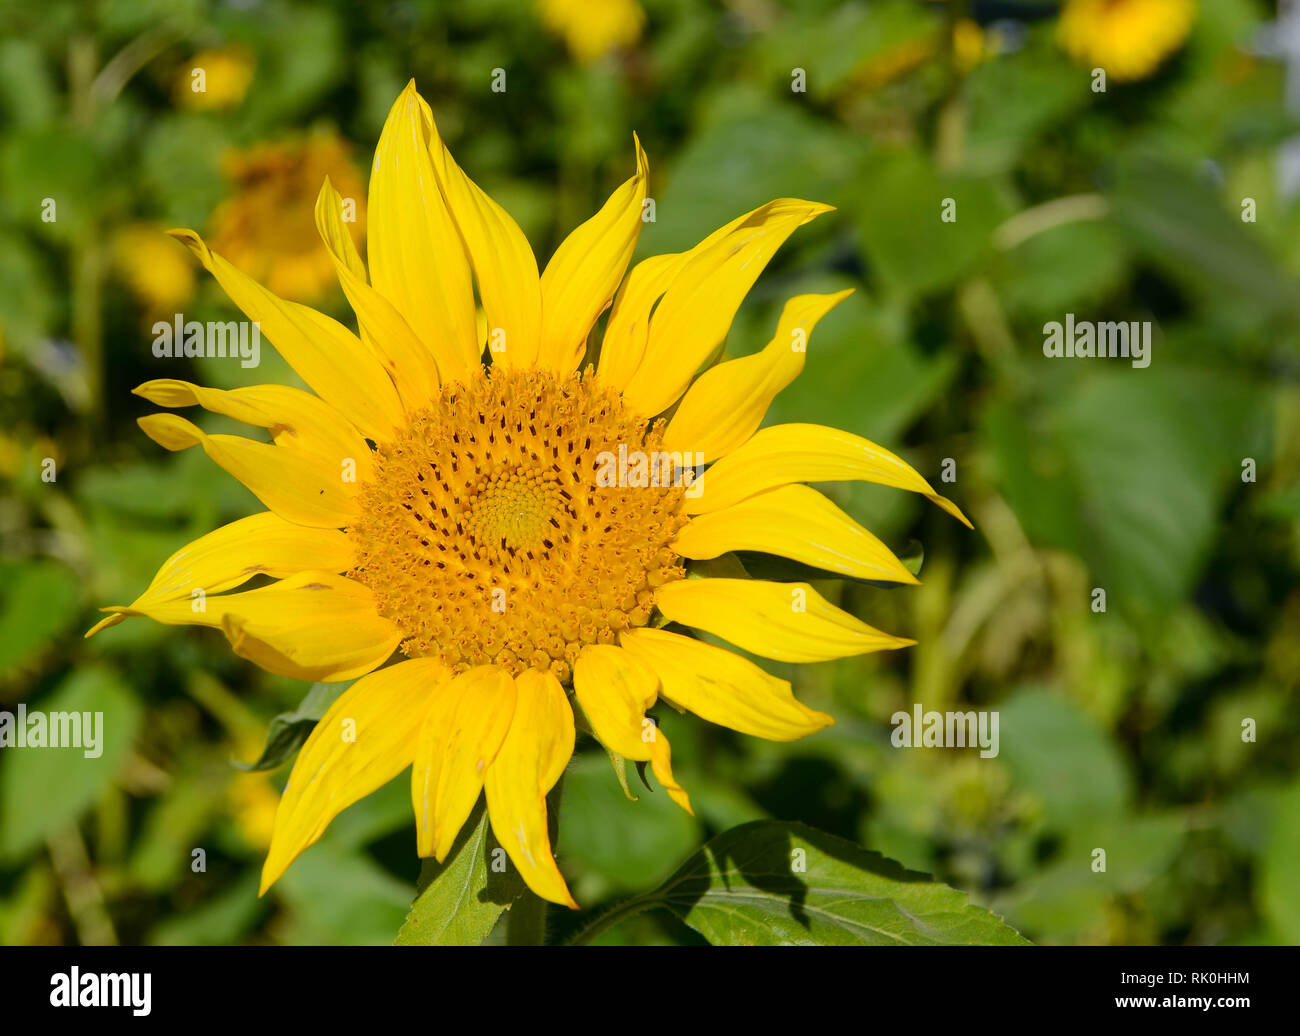 Small sunflower on blurred background - Stock Image